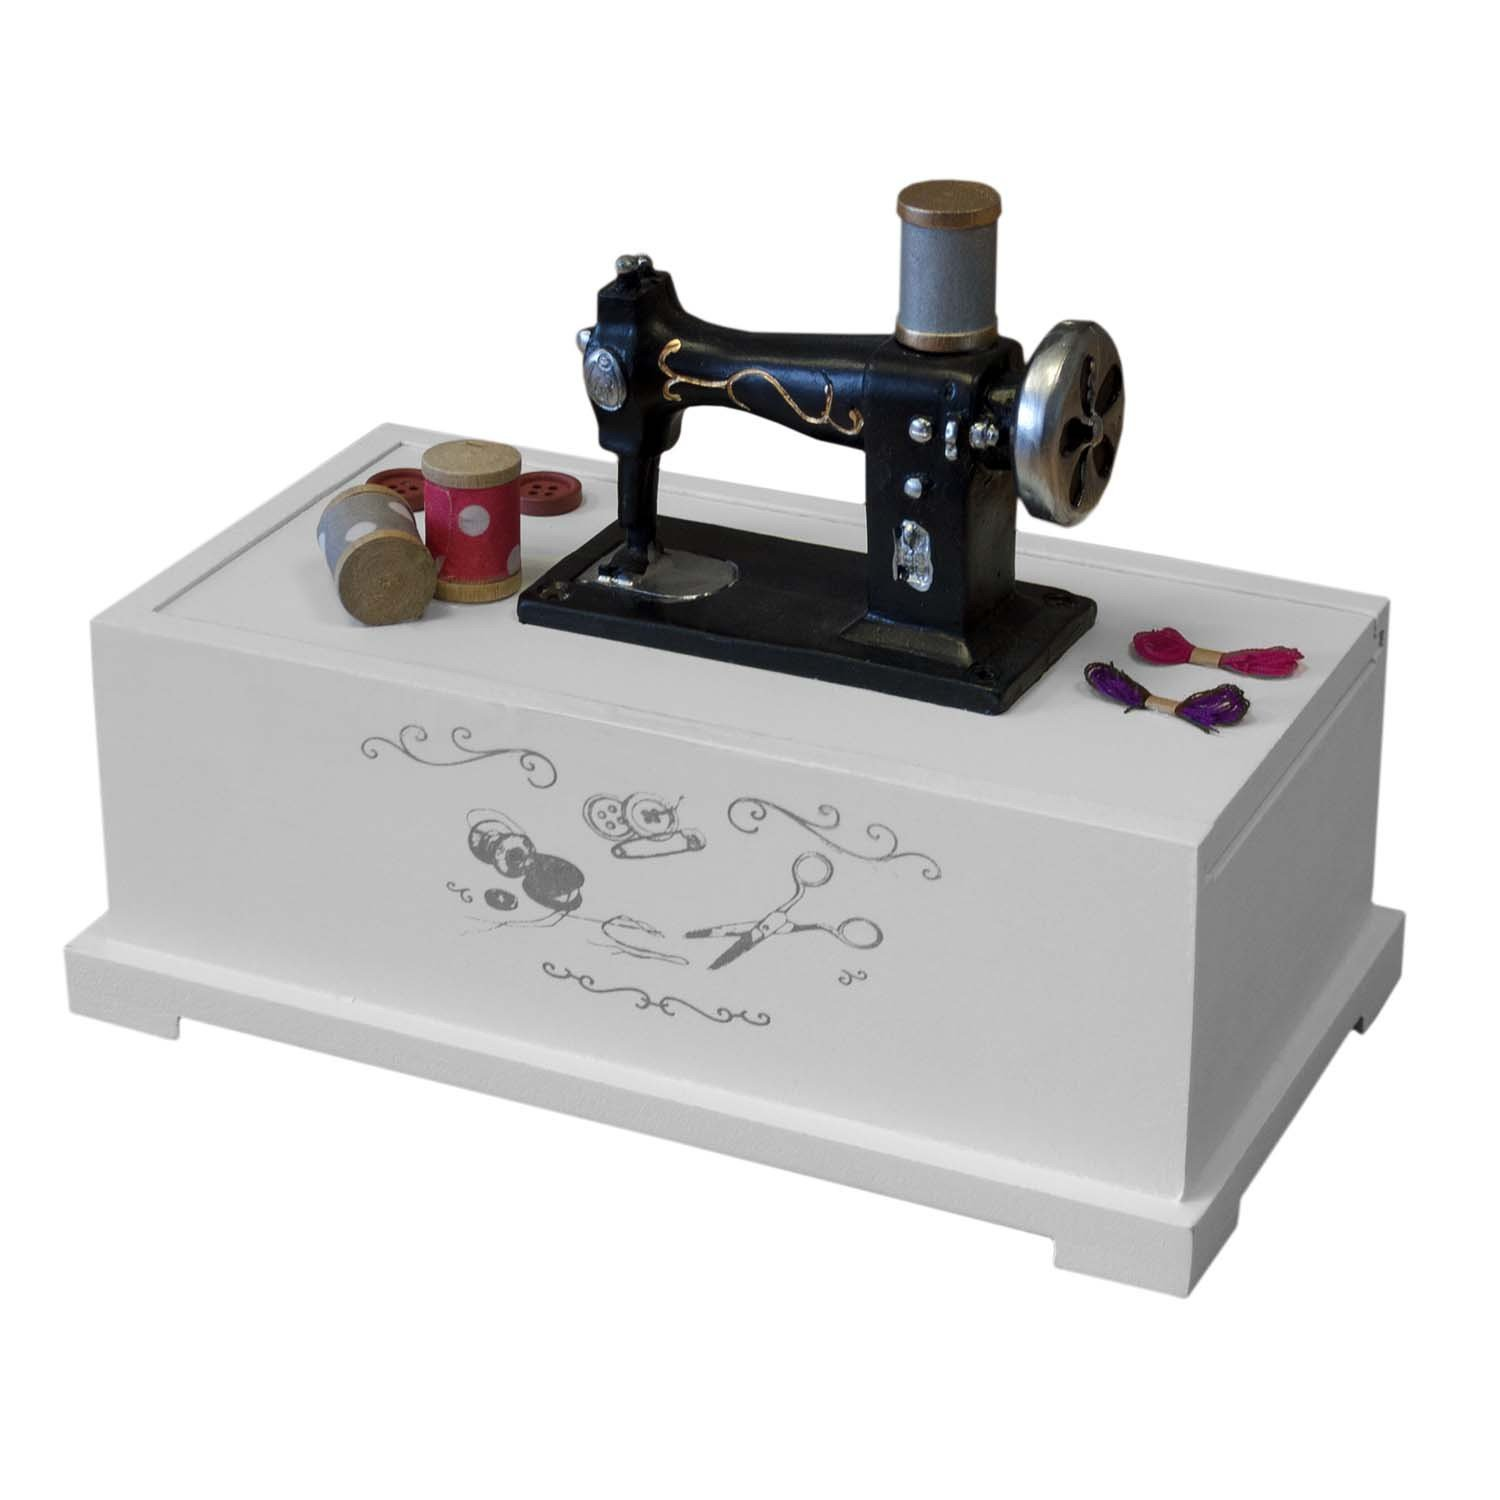 Sewing box sewing machine box sewing accessoires box 8,6x6,7x4,7' white for sewing things Multistore 2002